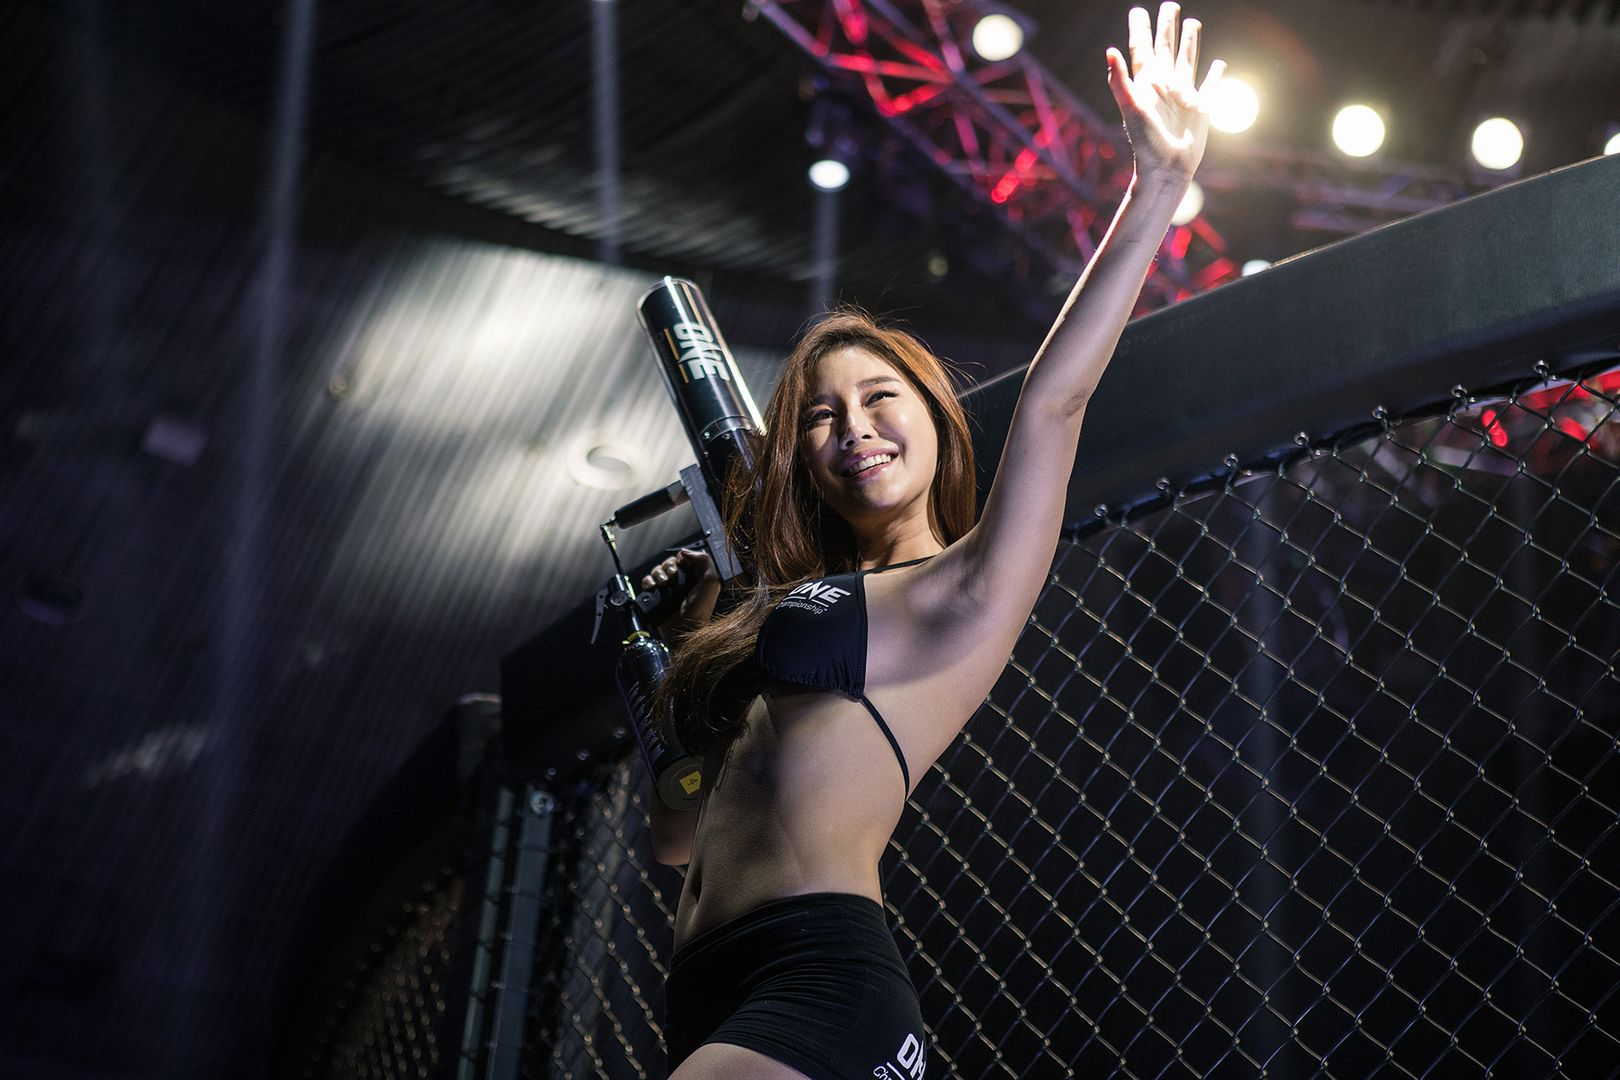 ONE Championship ring girl Cheon Sera is ready to shoot merchandise into the crowd